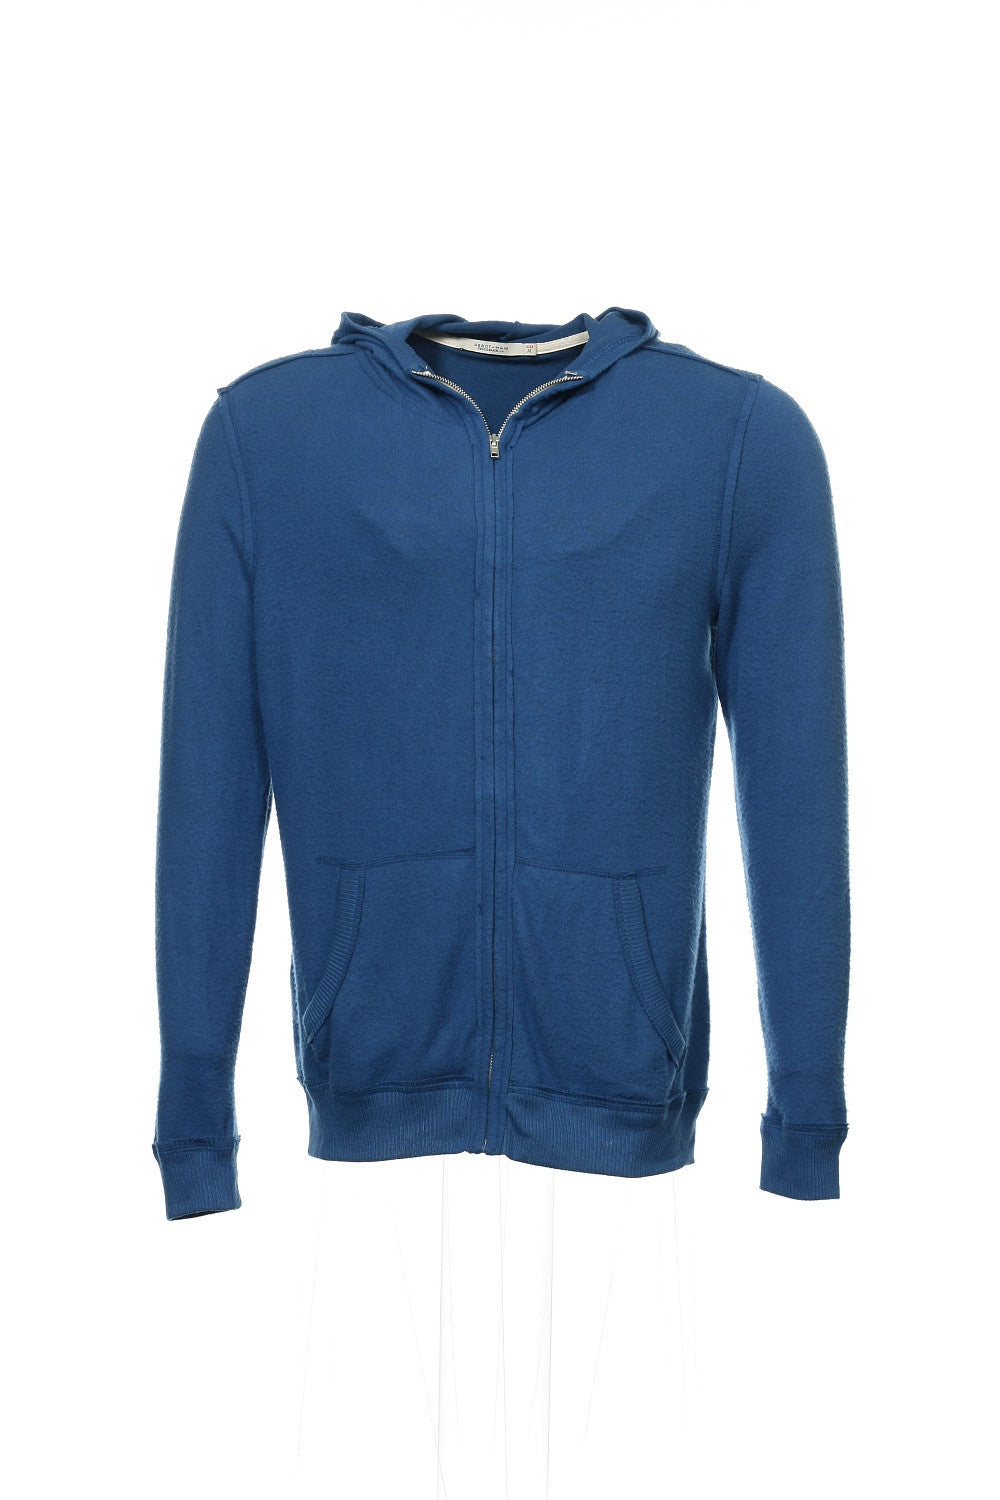 Abbot + Main Mens Blue Heather Full Zip Hoodie